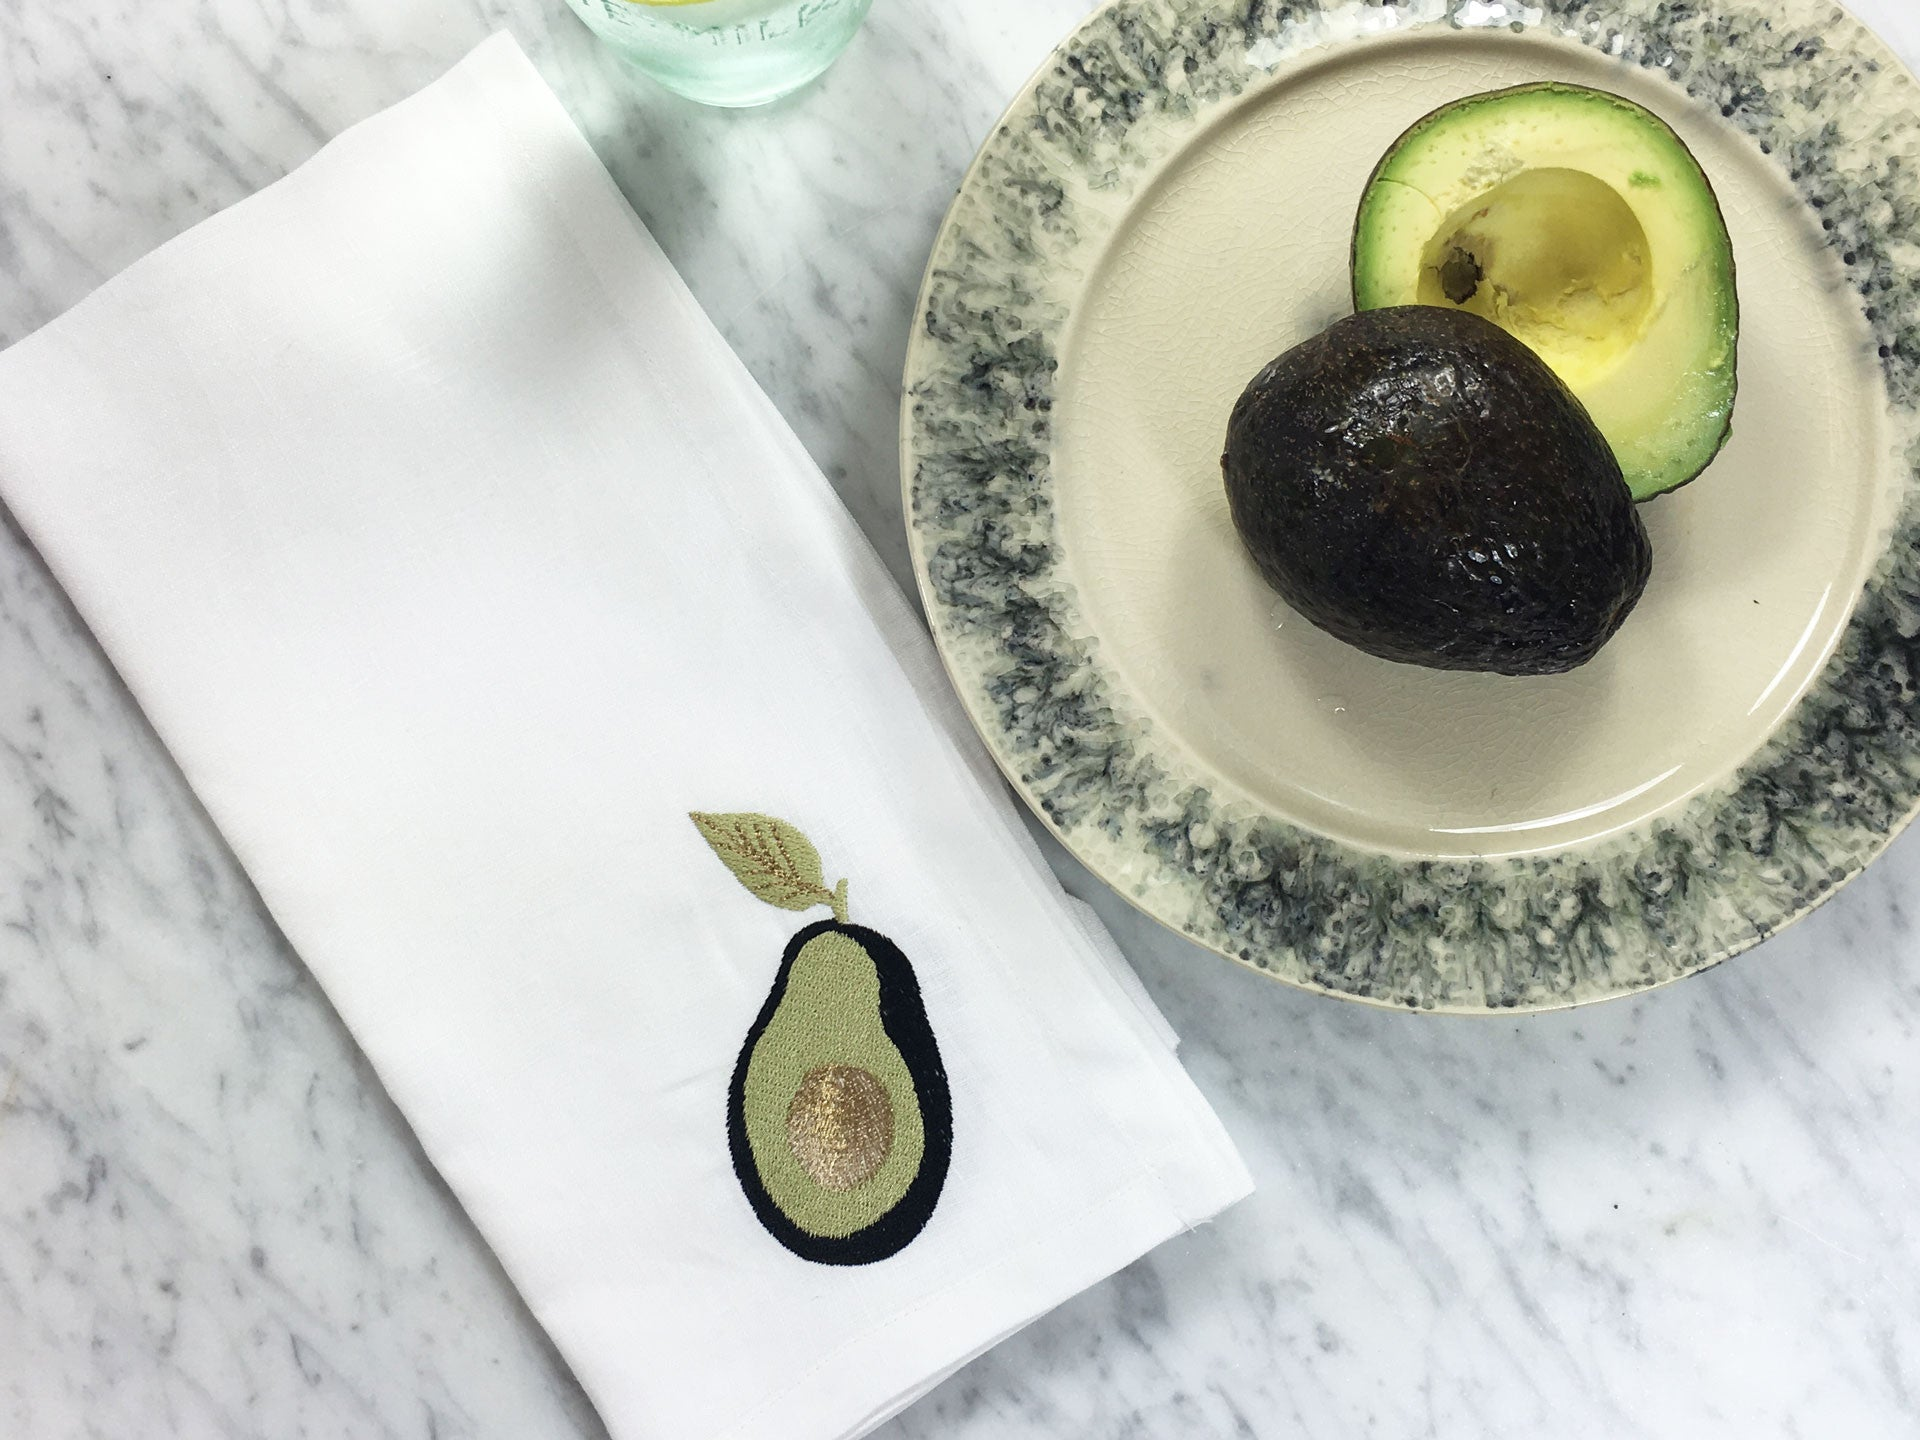 Grab That Hass Napkin with Anthropologie Plate and Avocado